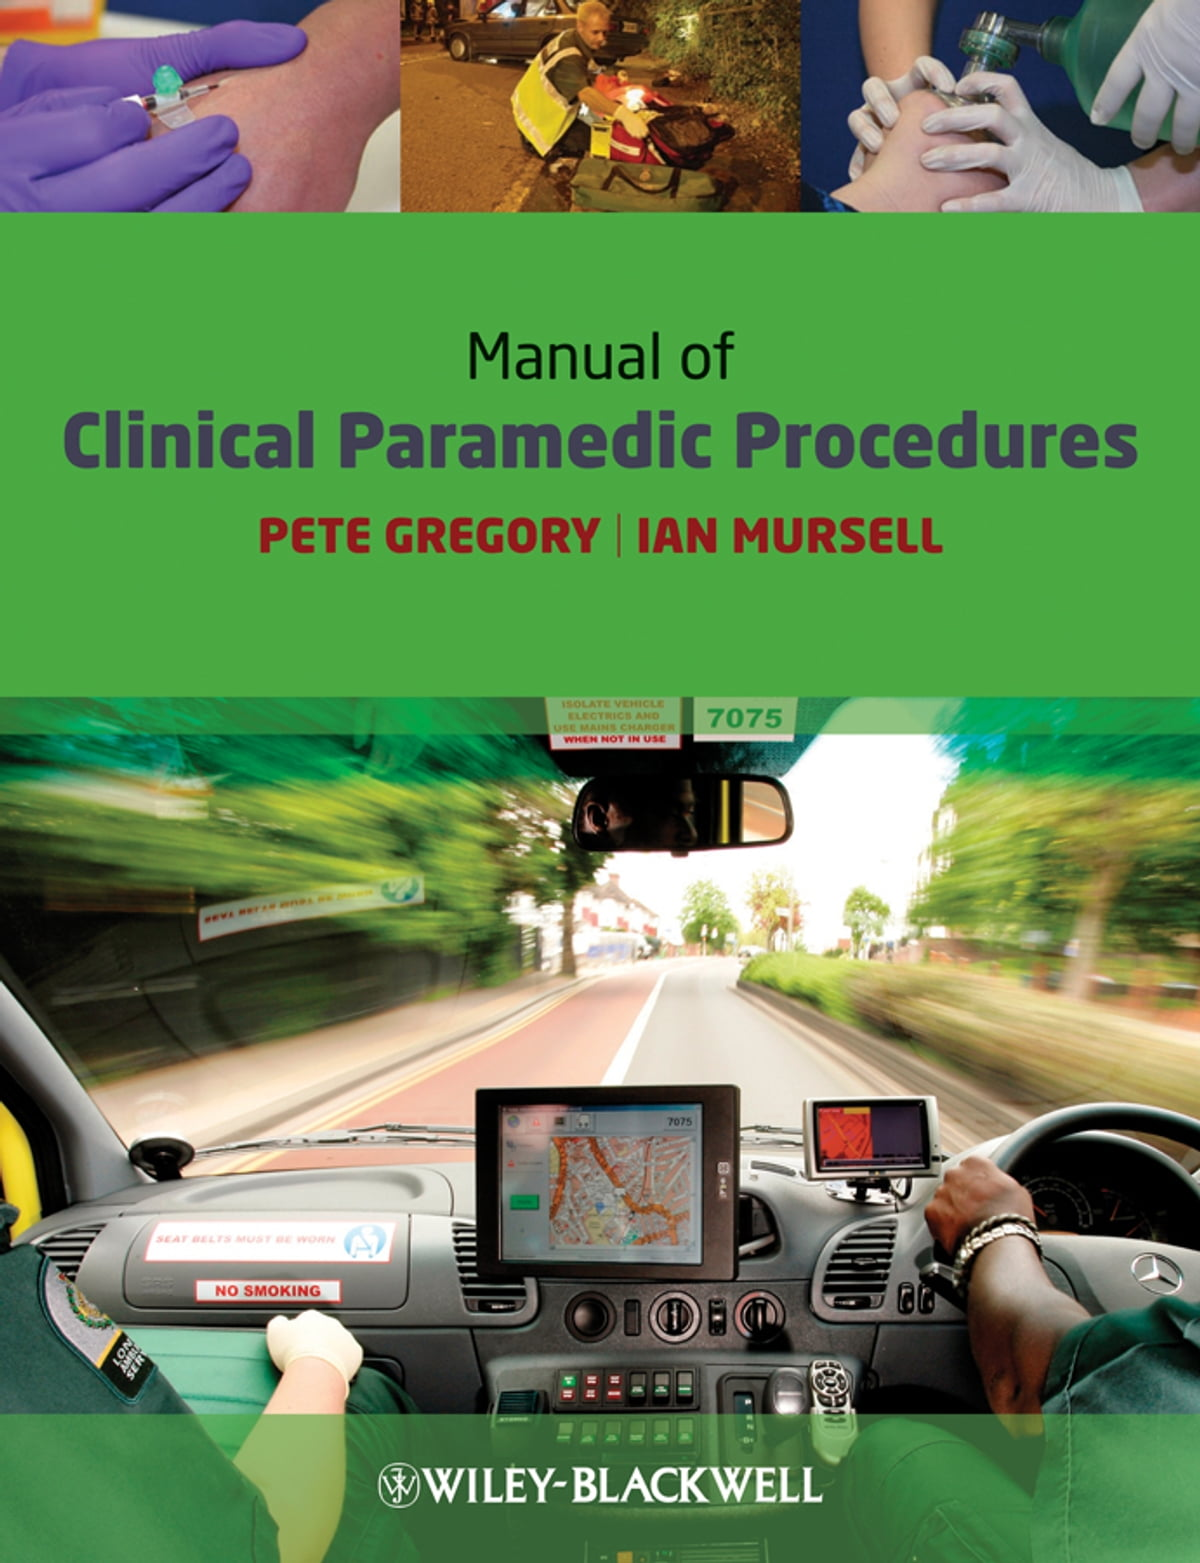 Manual of Clinical Paramedic Procedures eBook by Pete Gregory ...